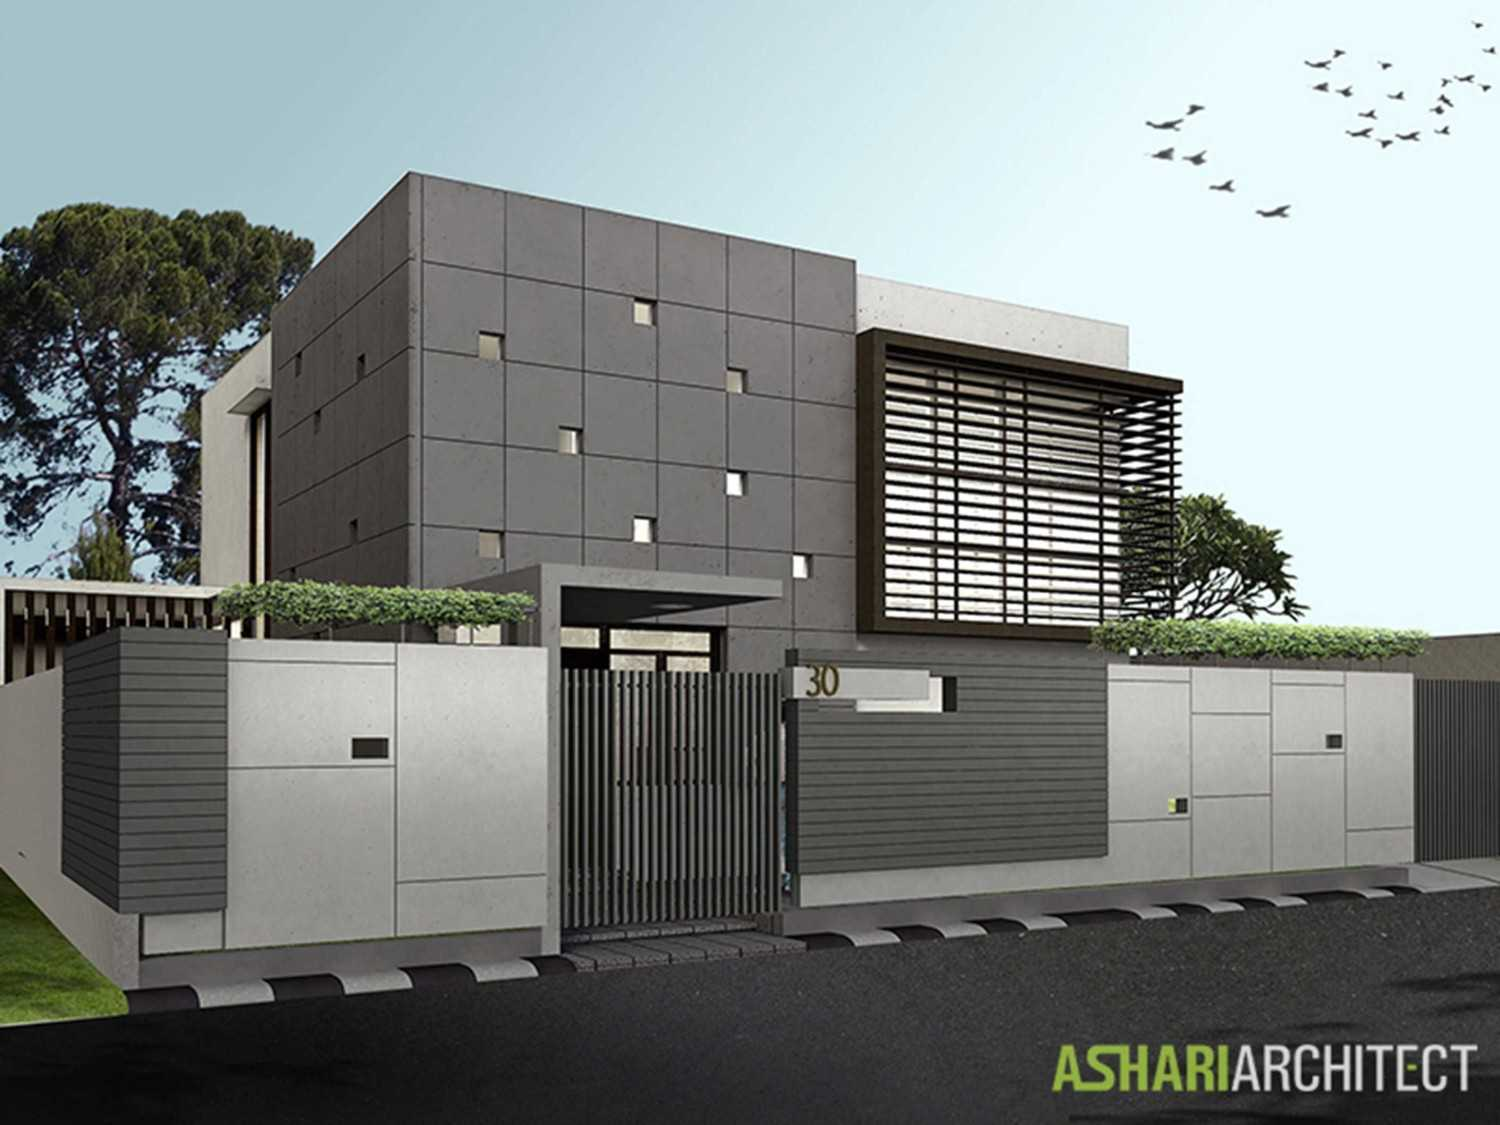 Ashari Architects Palembang House Palembang, Indonesia Palembang, Indonesia Render-Front-View Kontemporer 11870